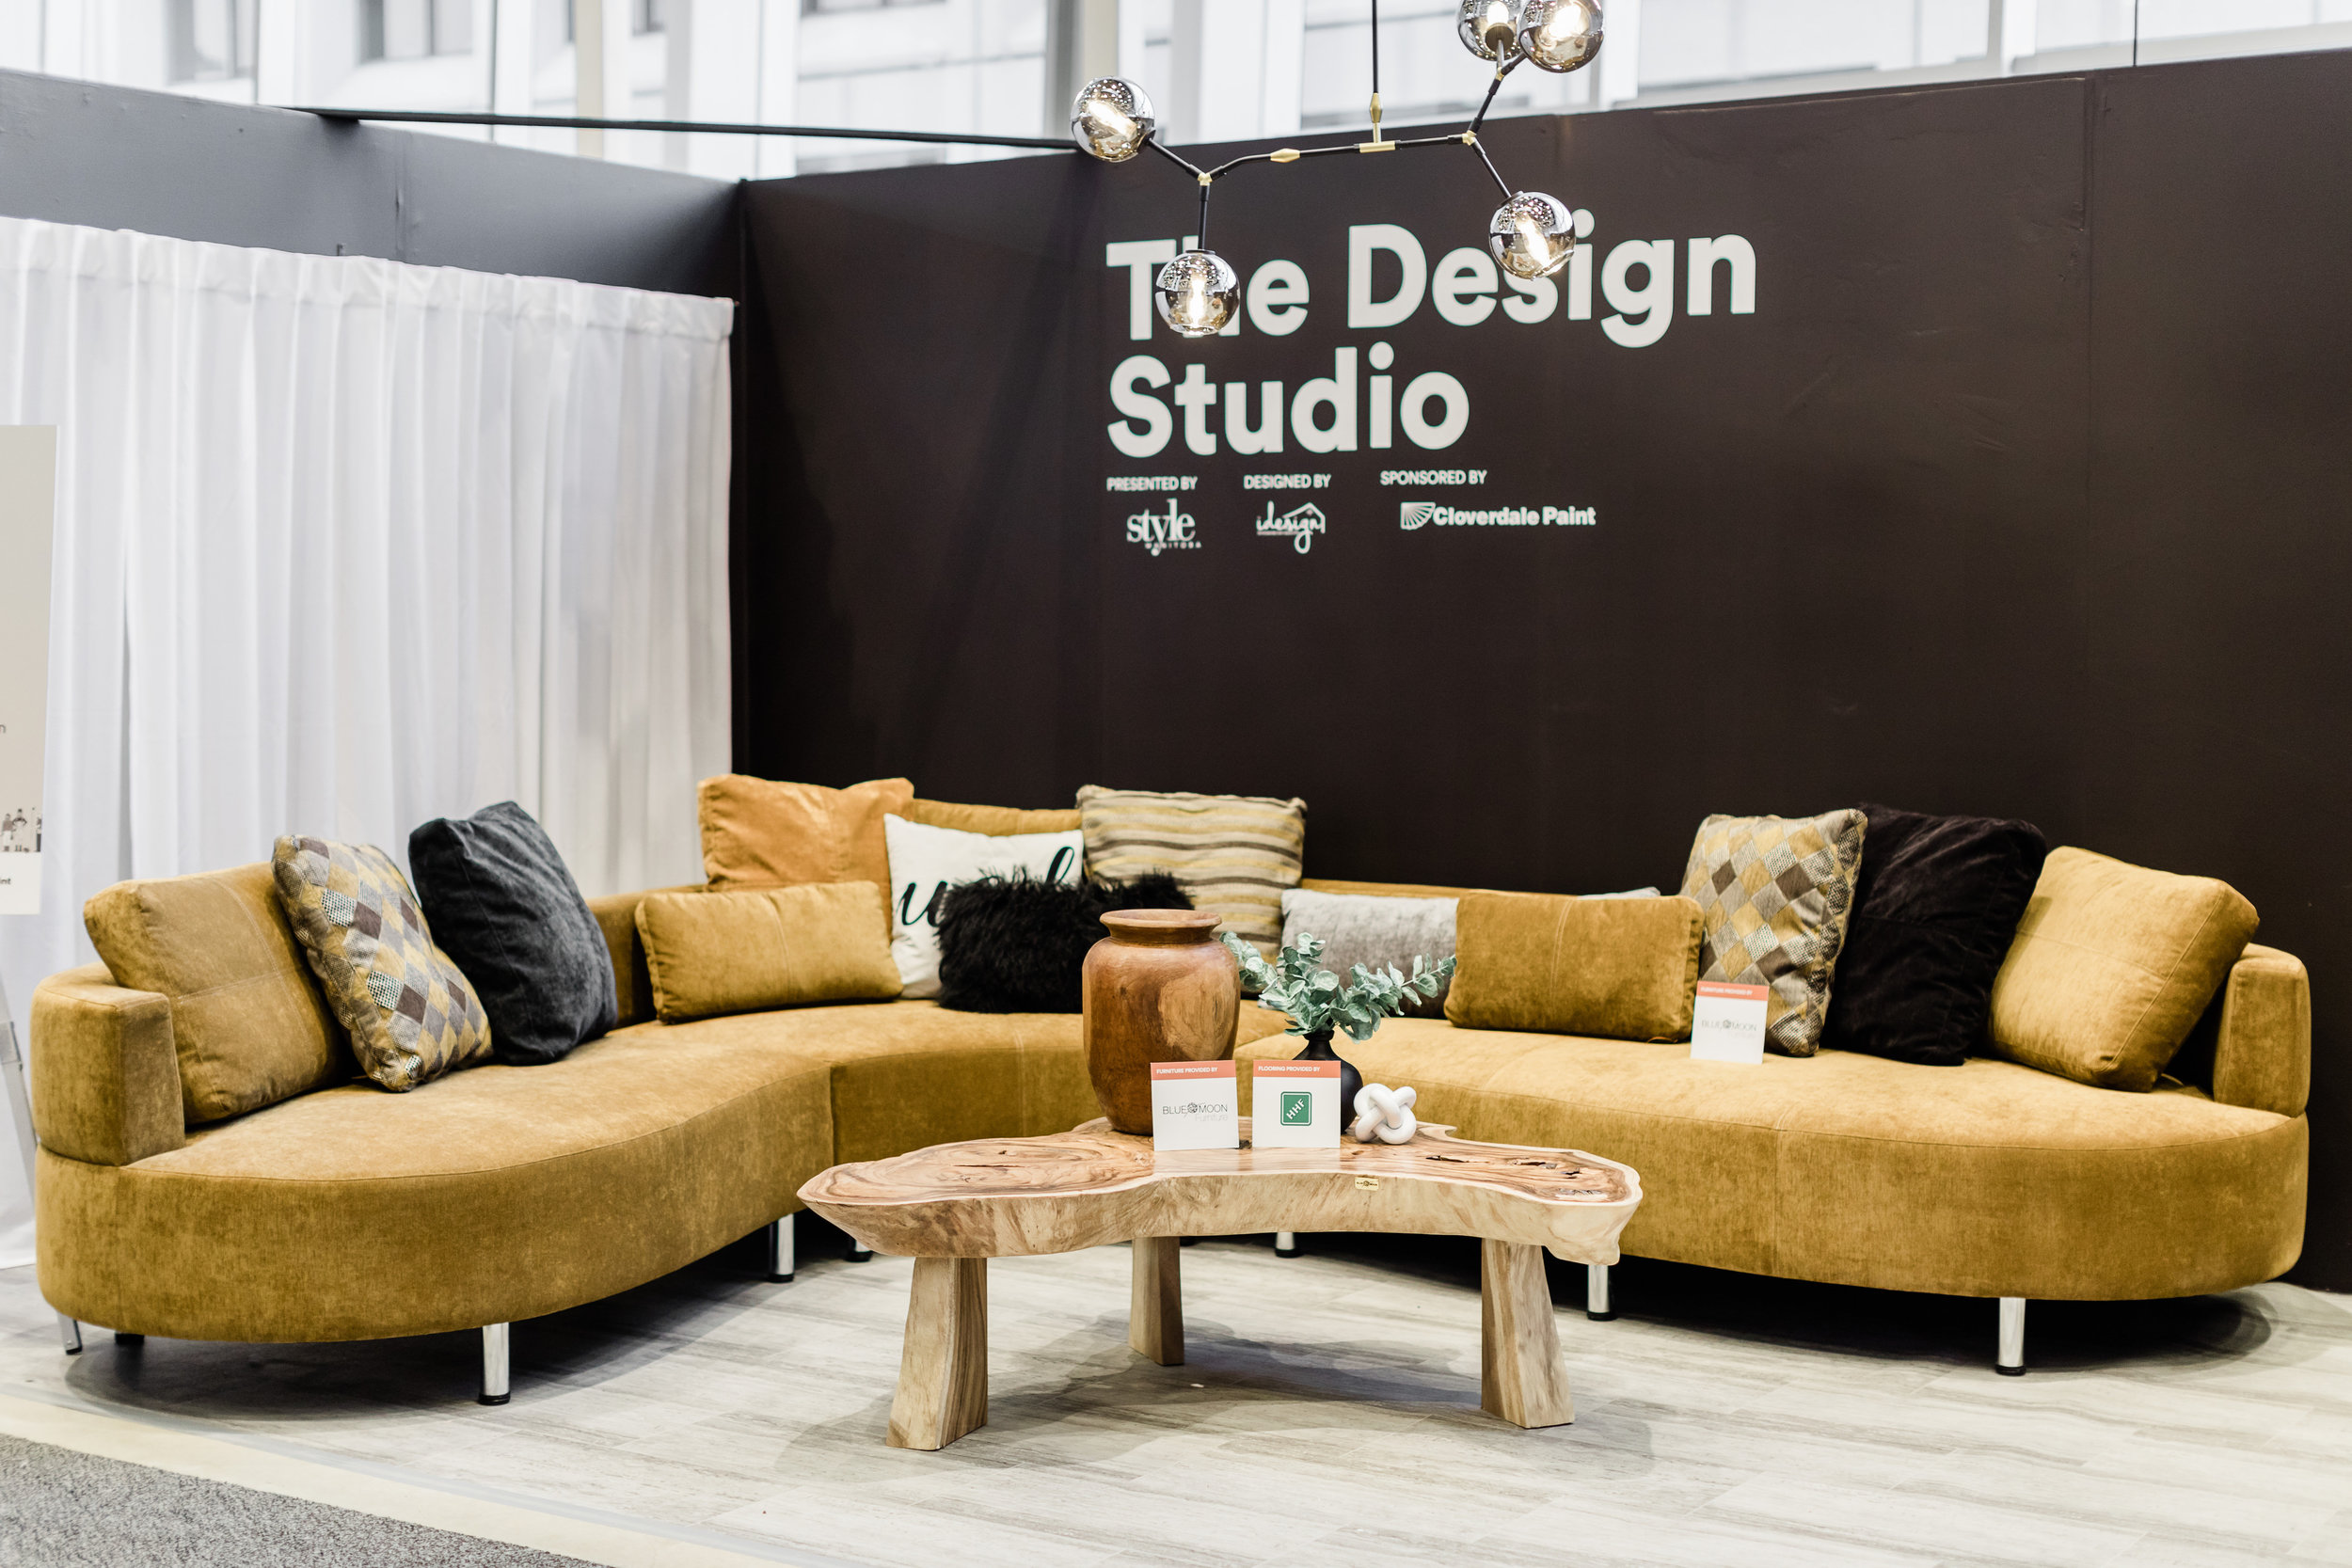 winnipeg renovation show. The Design studio. Blue Moon Furniture. Bronze Cocoon 2 sectional.